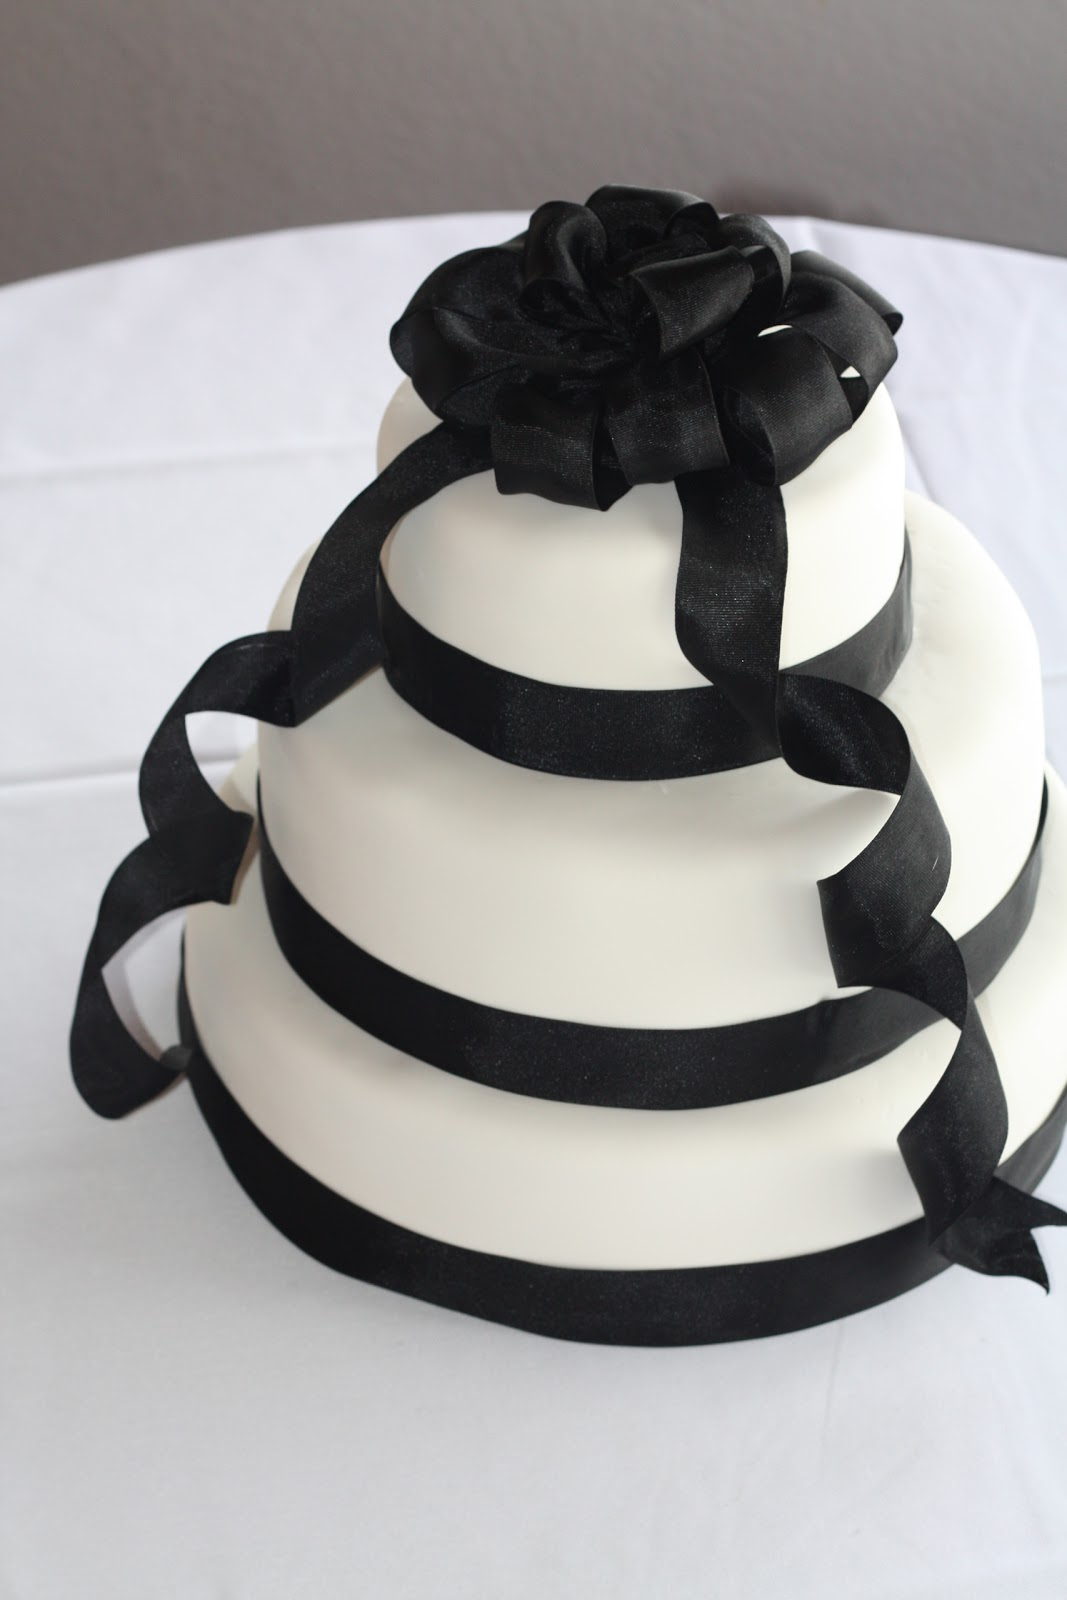 Becca s Blue Bakery Classic Black Ribbon Wedding Cake